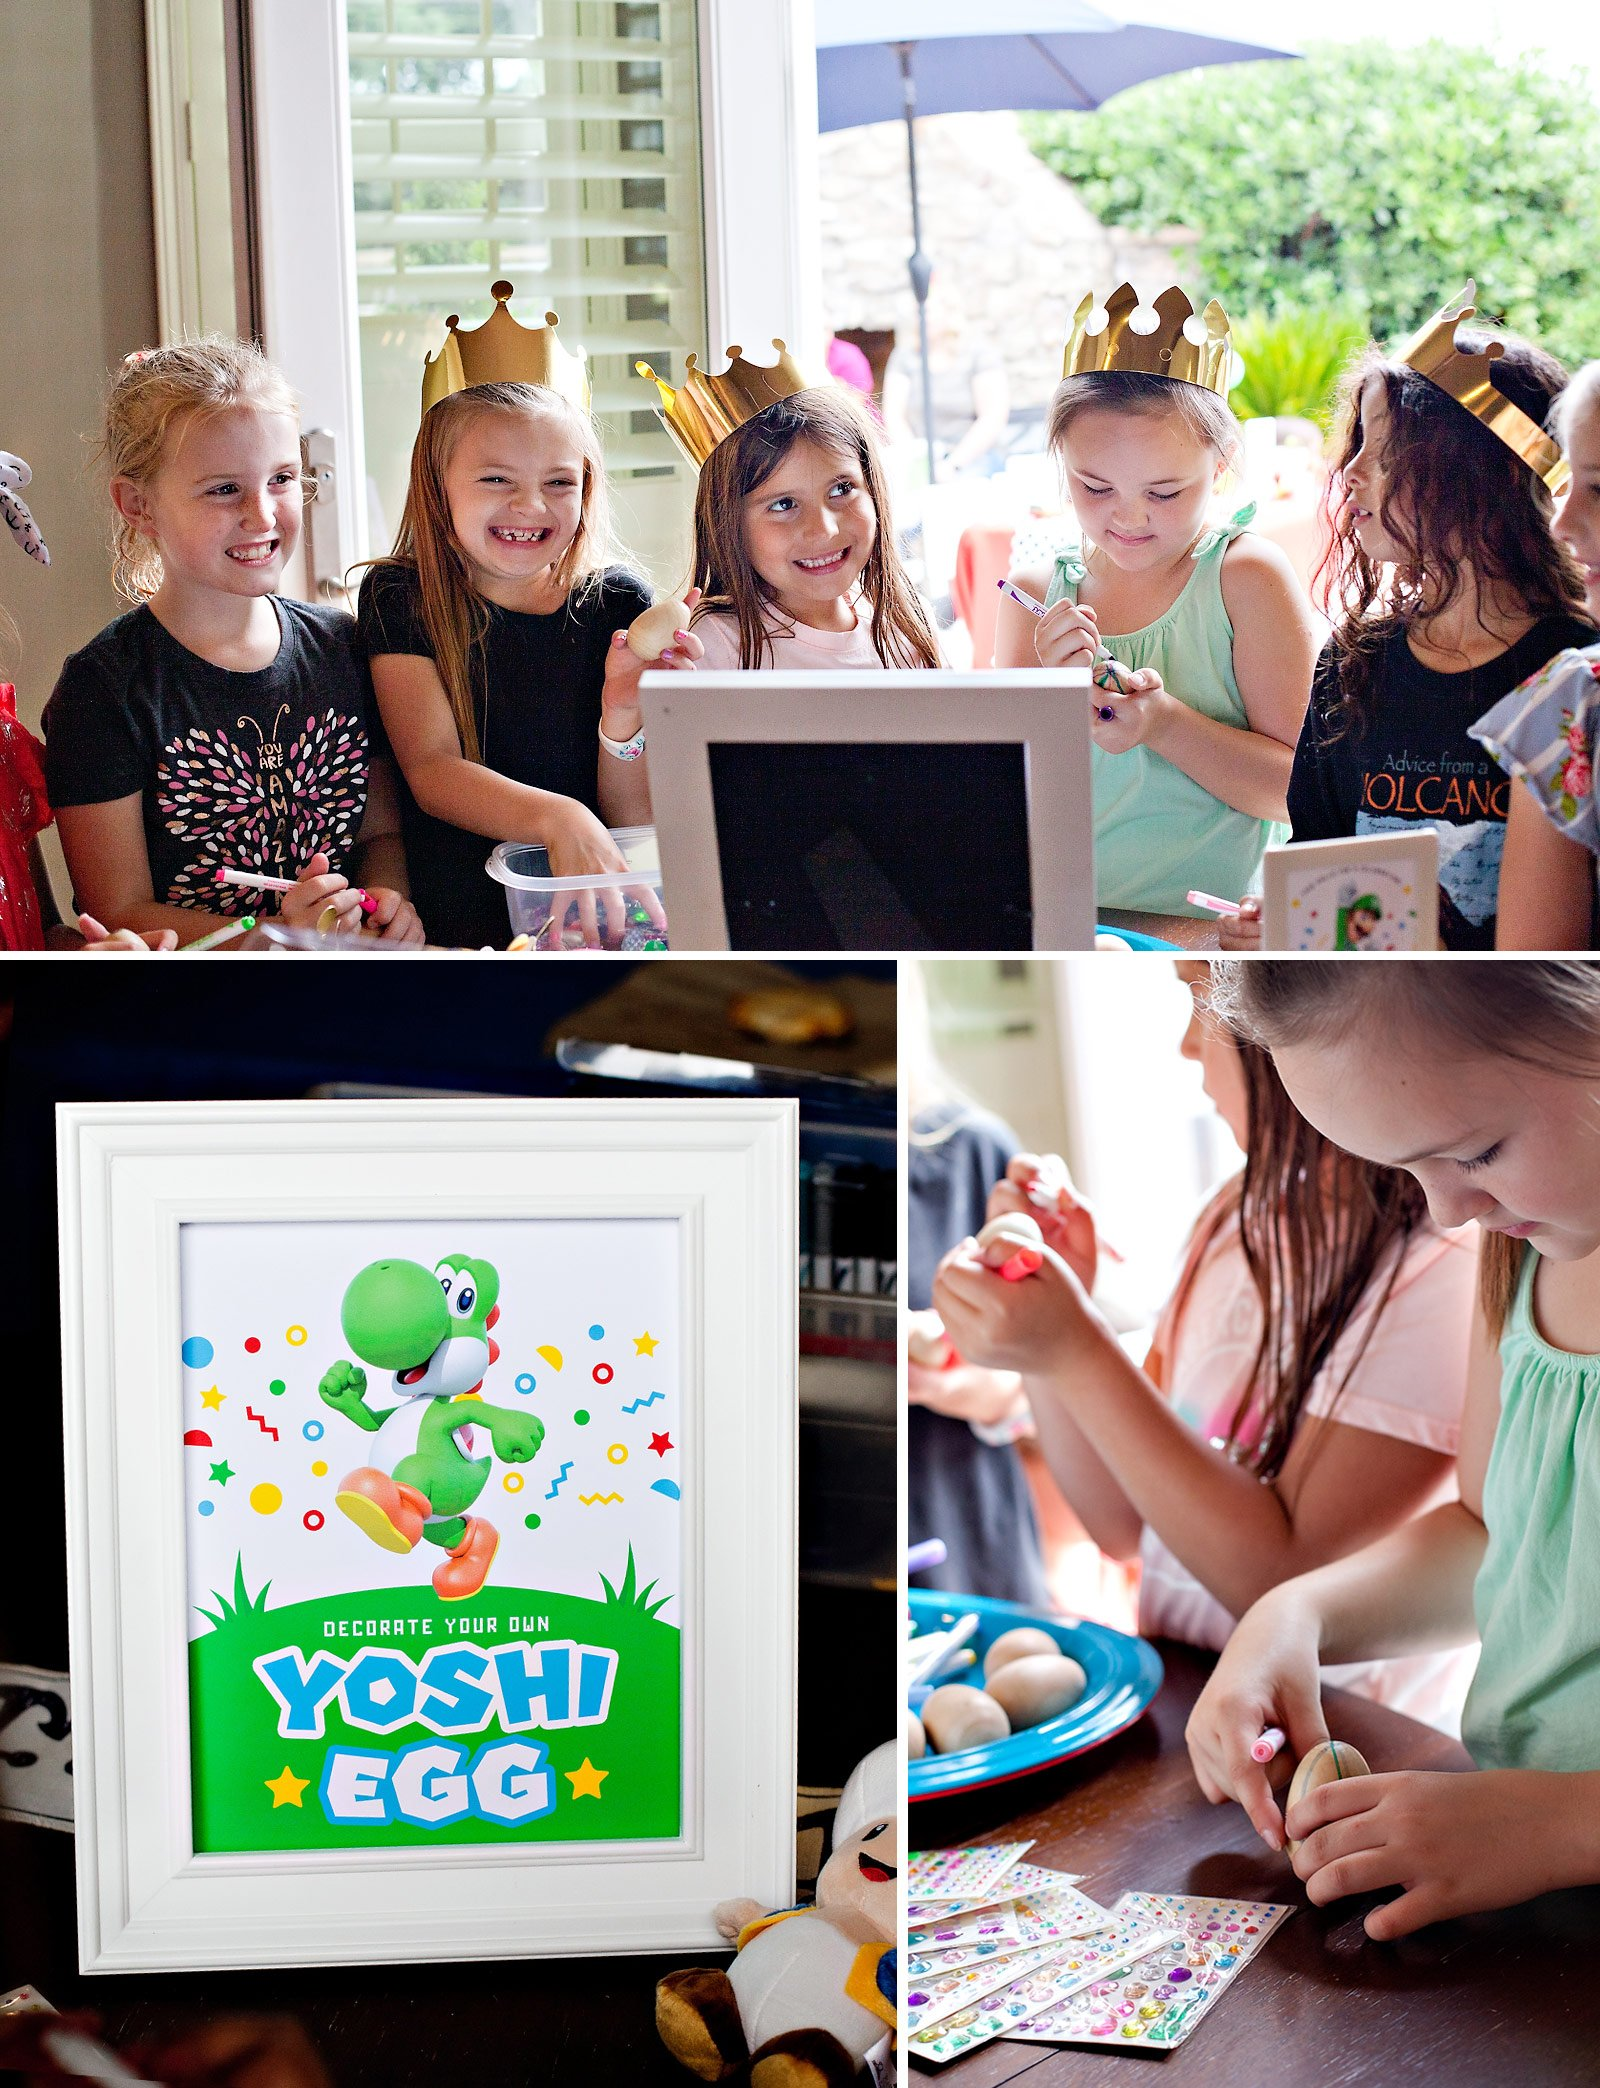 Yoshi Egg Decorating Mario Party Activity